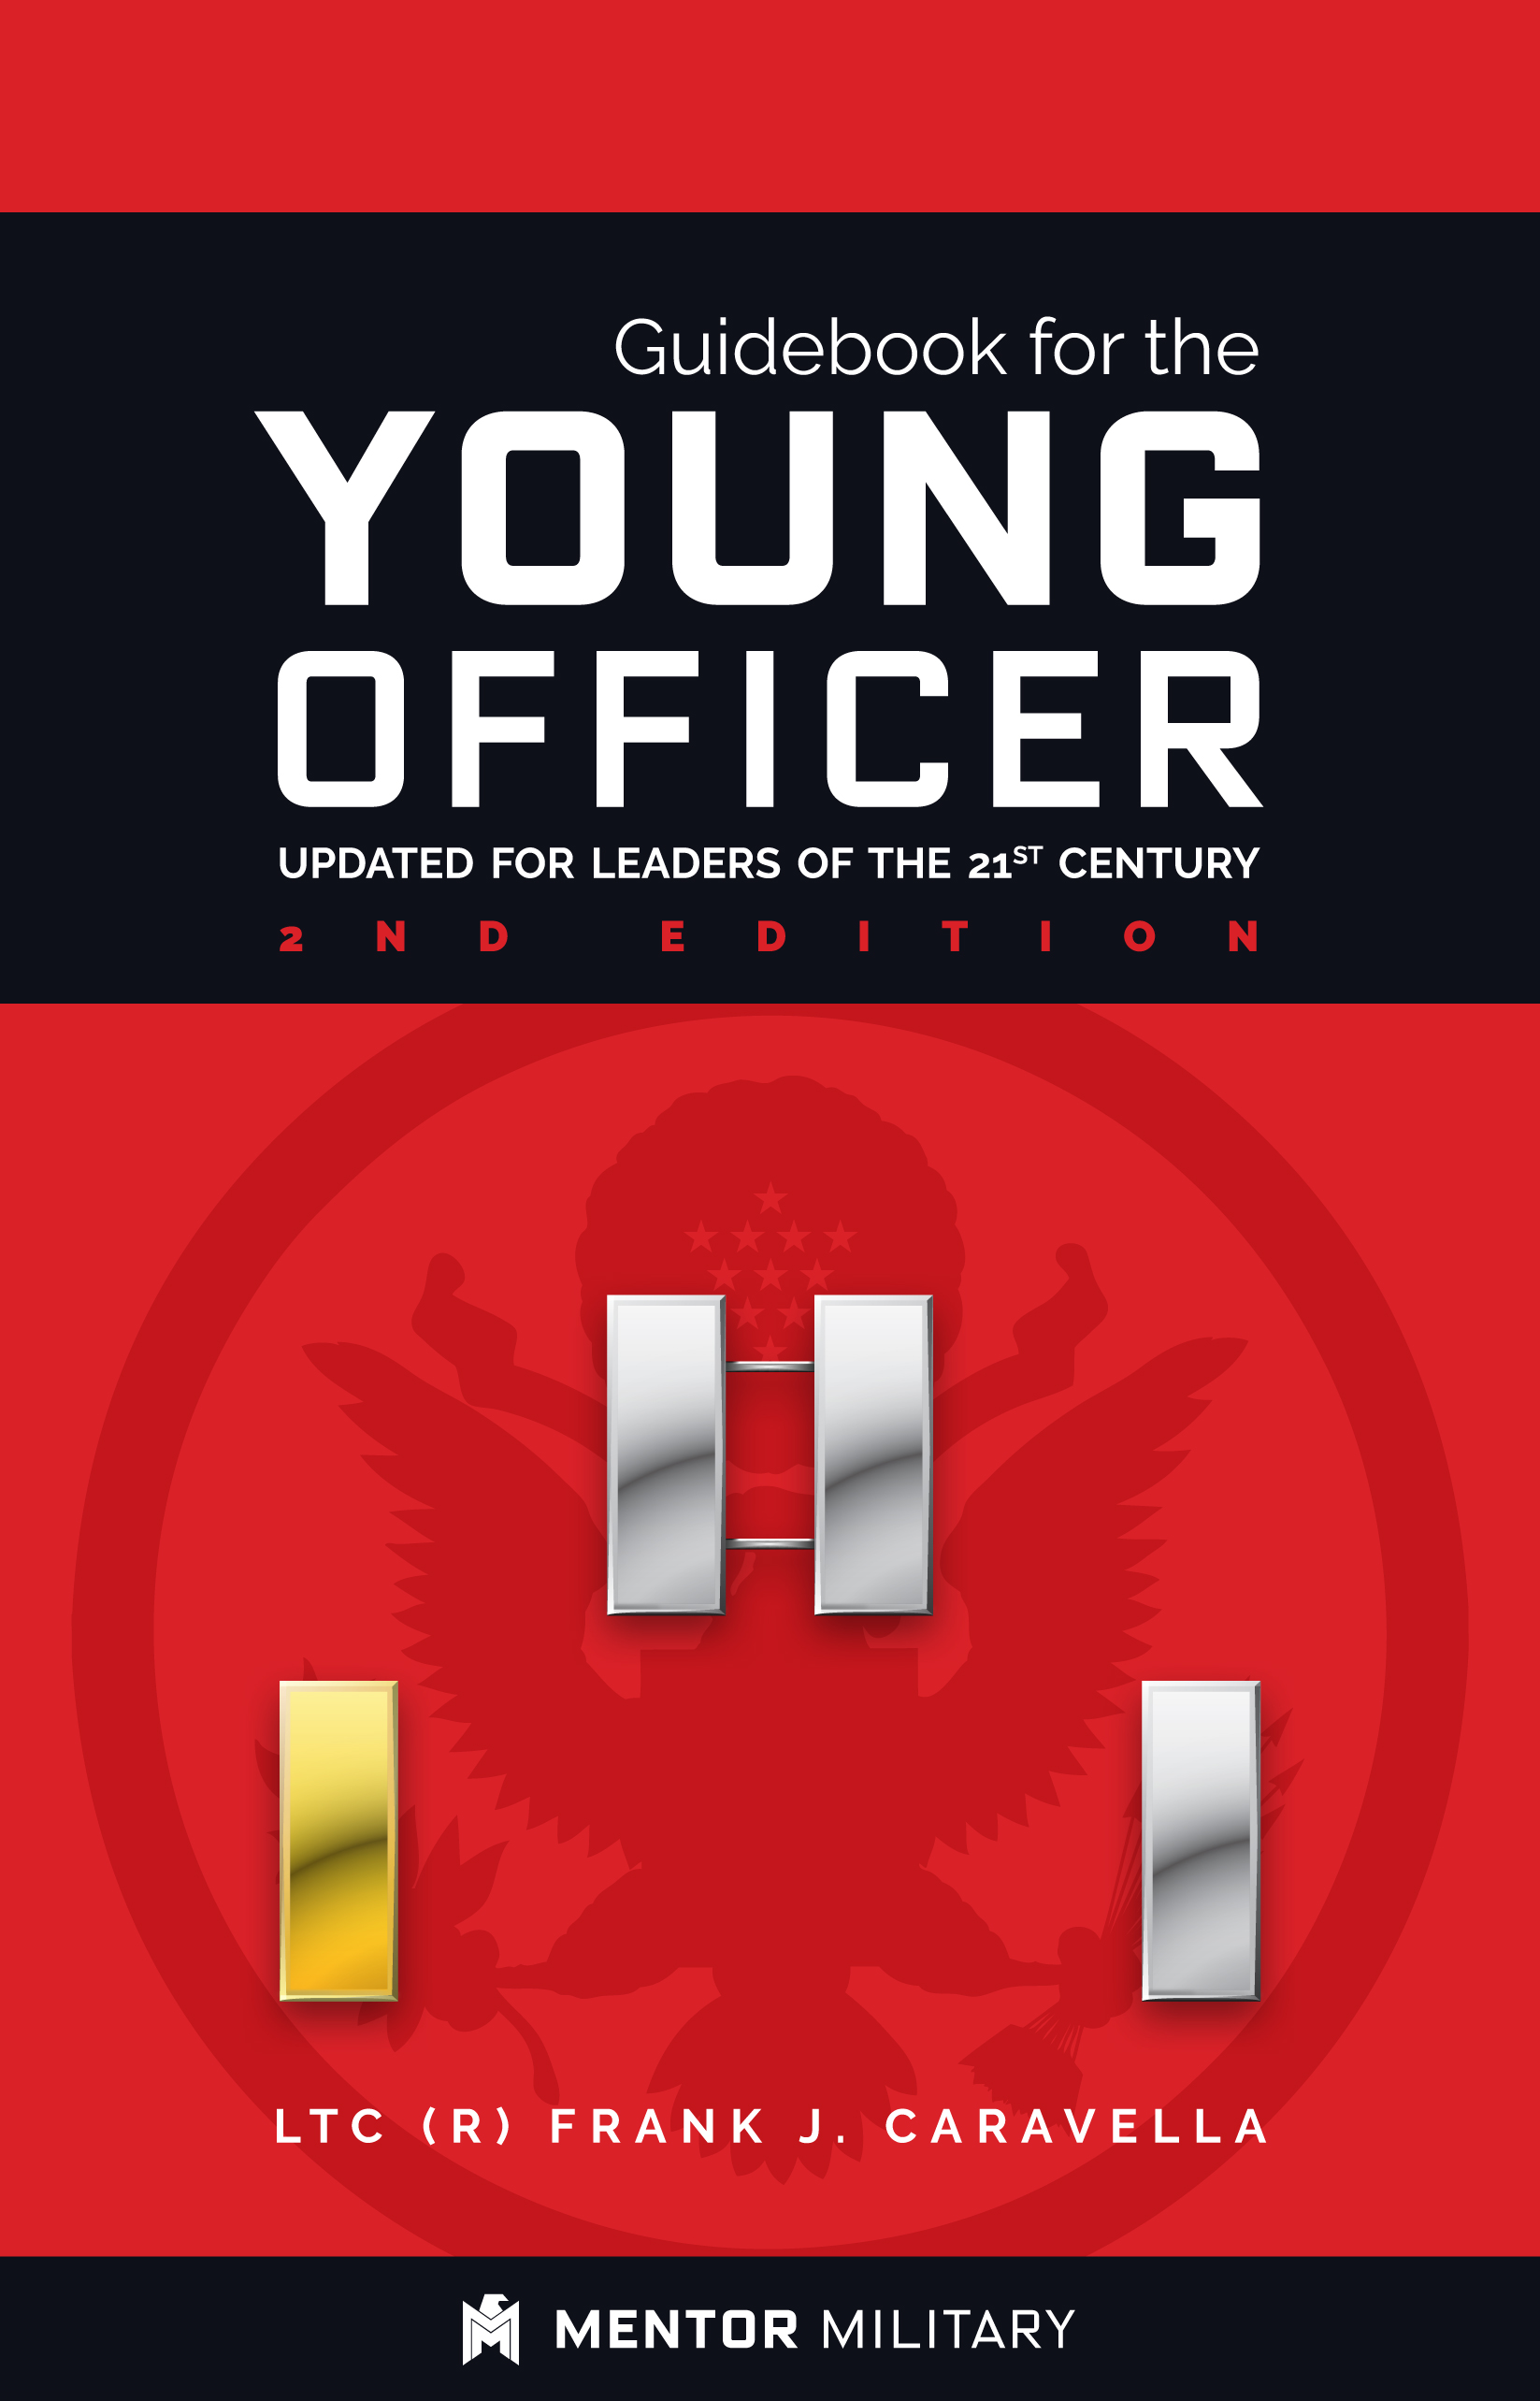 Guidebook for the Young Officer